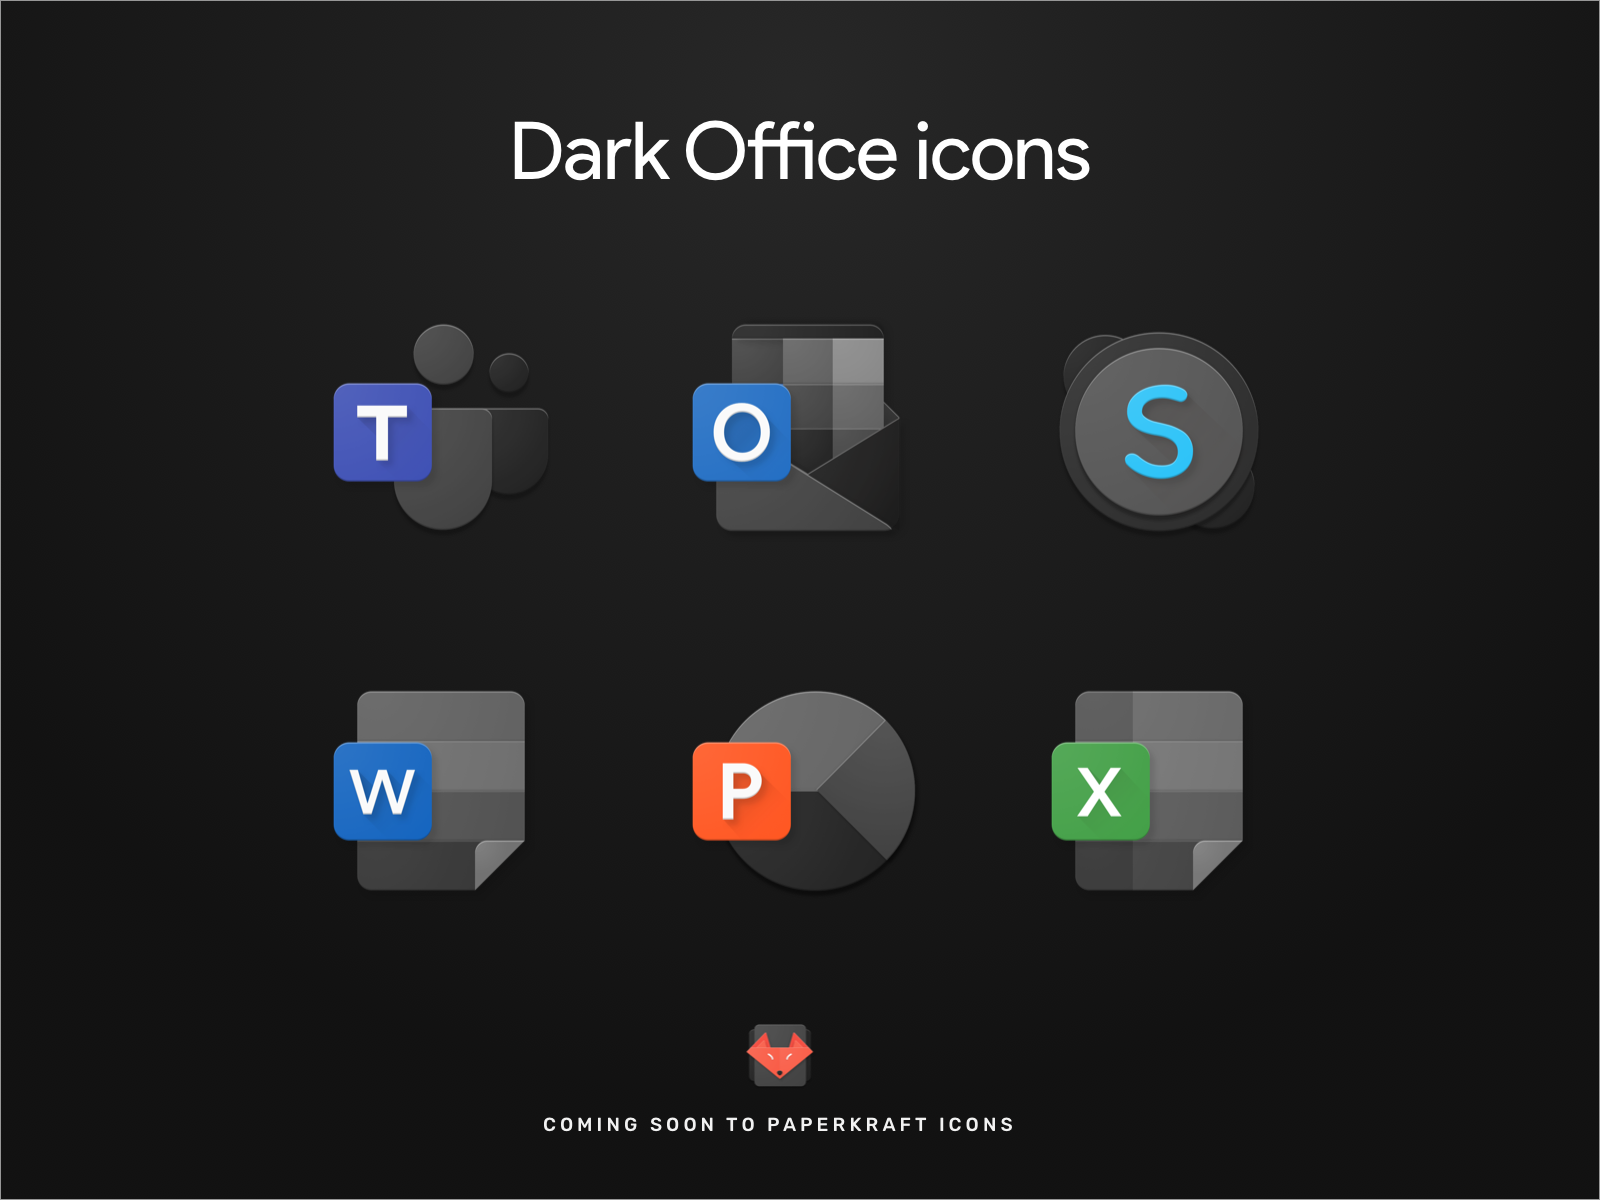 Microsoft Office icons Dark Office icon, Icon